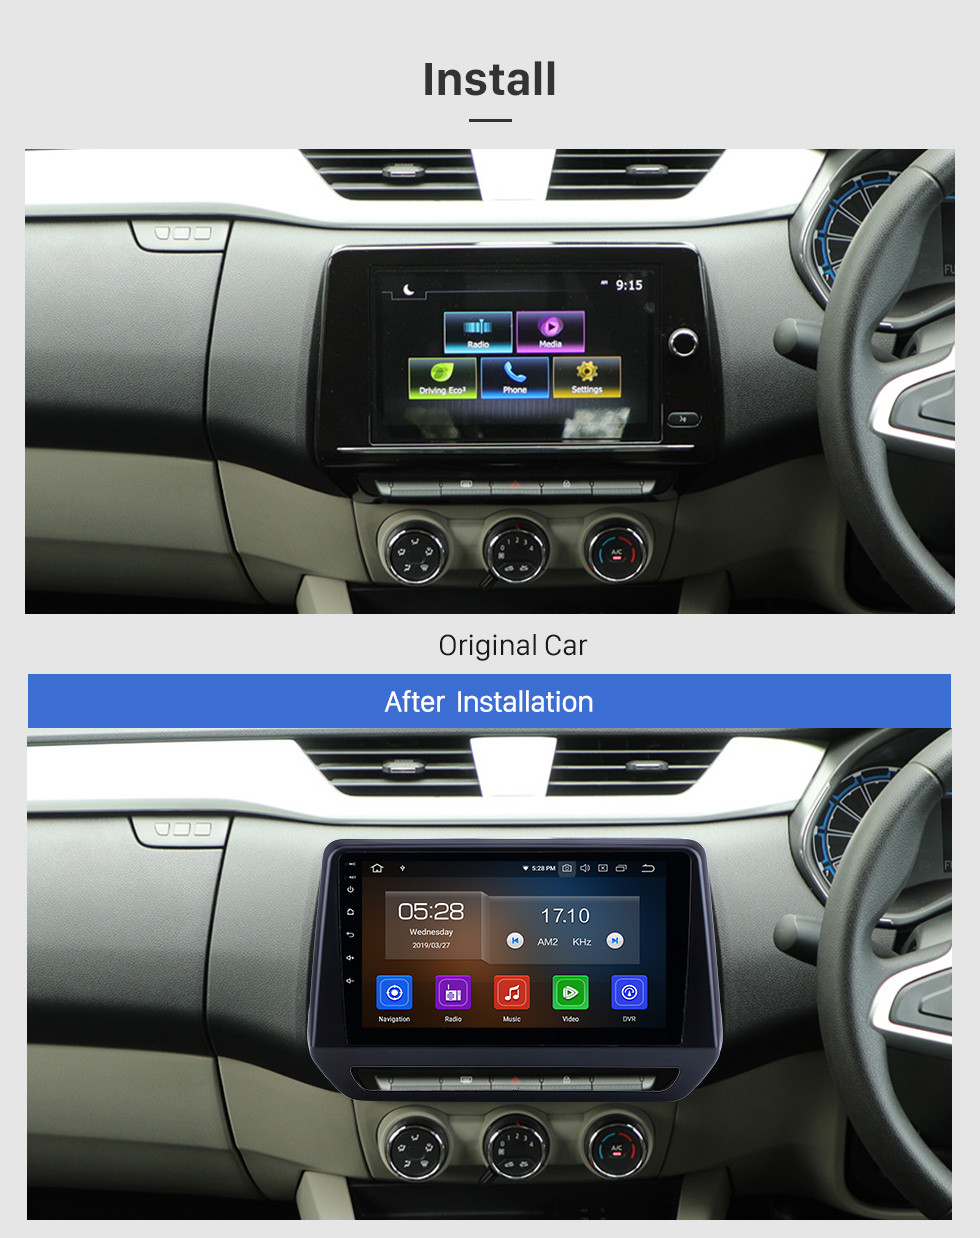 Seicane HD Touchscreen For 2019 Renault Triber Radio Android 10.0 9 inch GPS Navigation Bluetooth AUX Carplay support TPMS Backup camera